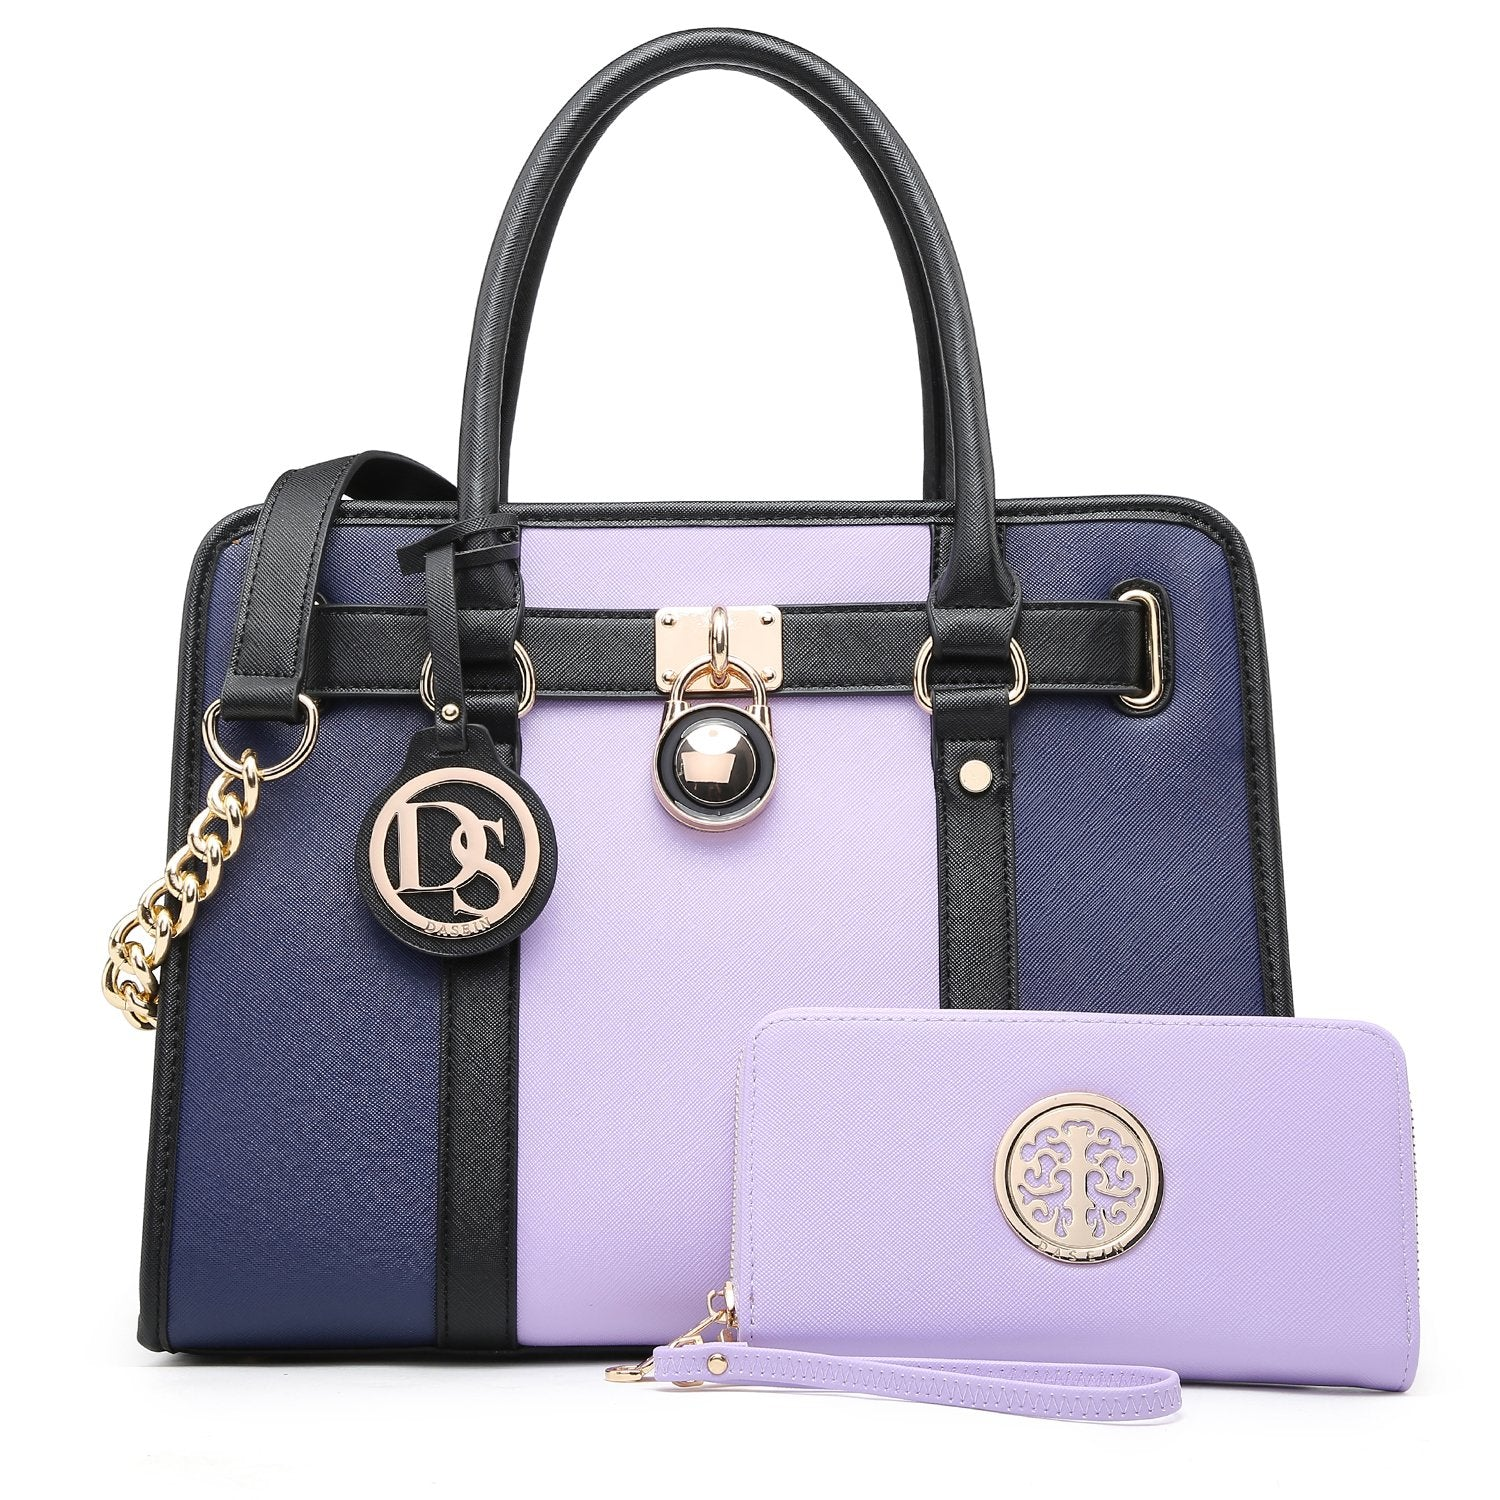 Two Tone Satchel Top Handle Bags Work Tote with Matching Wallet丨Dasein